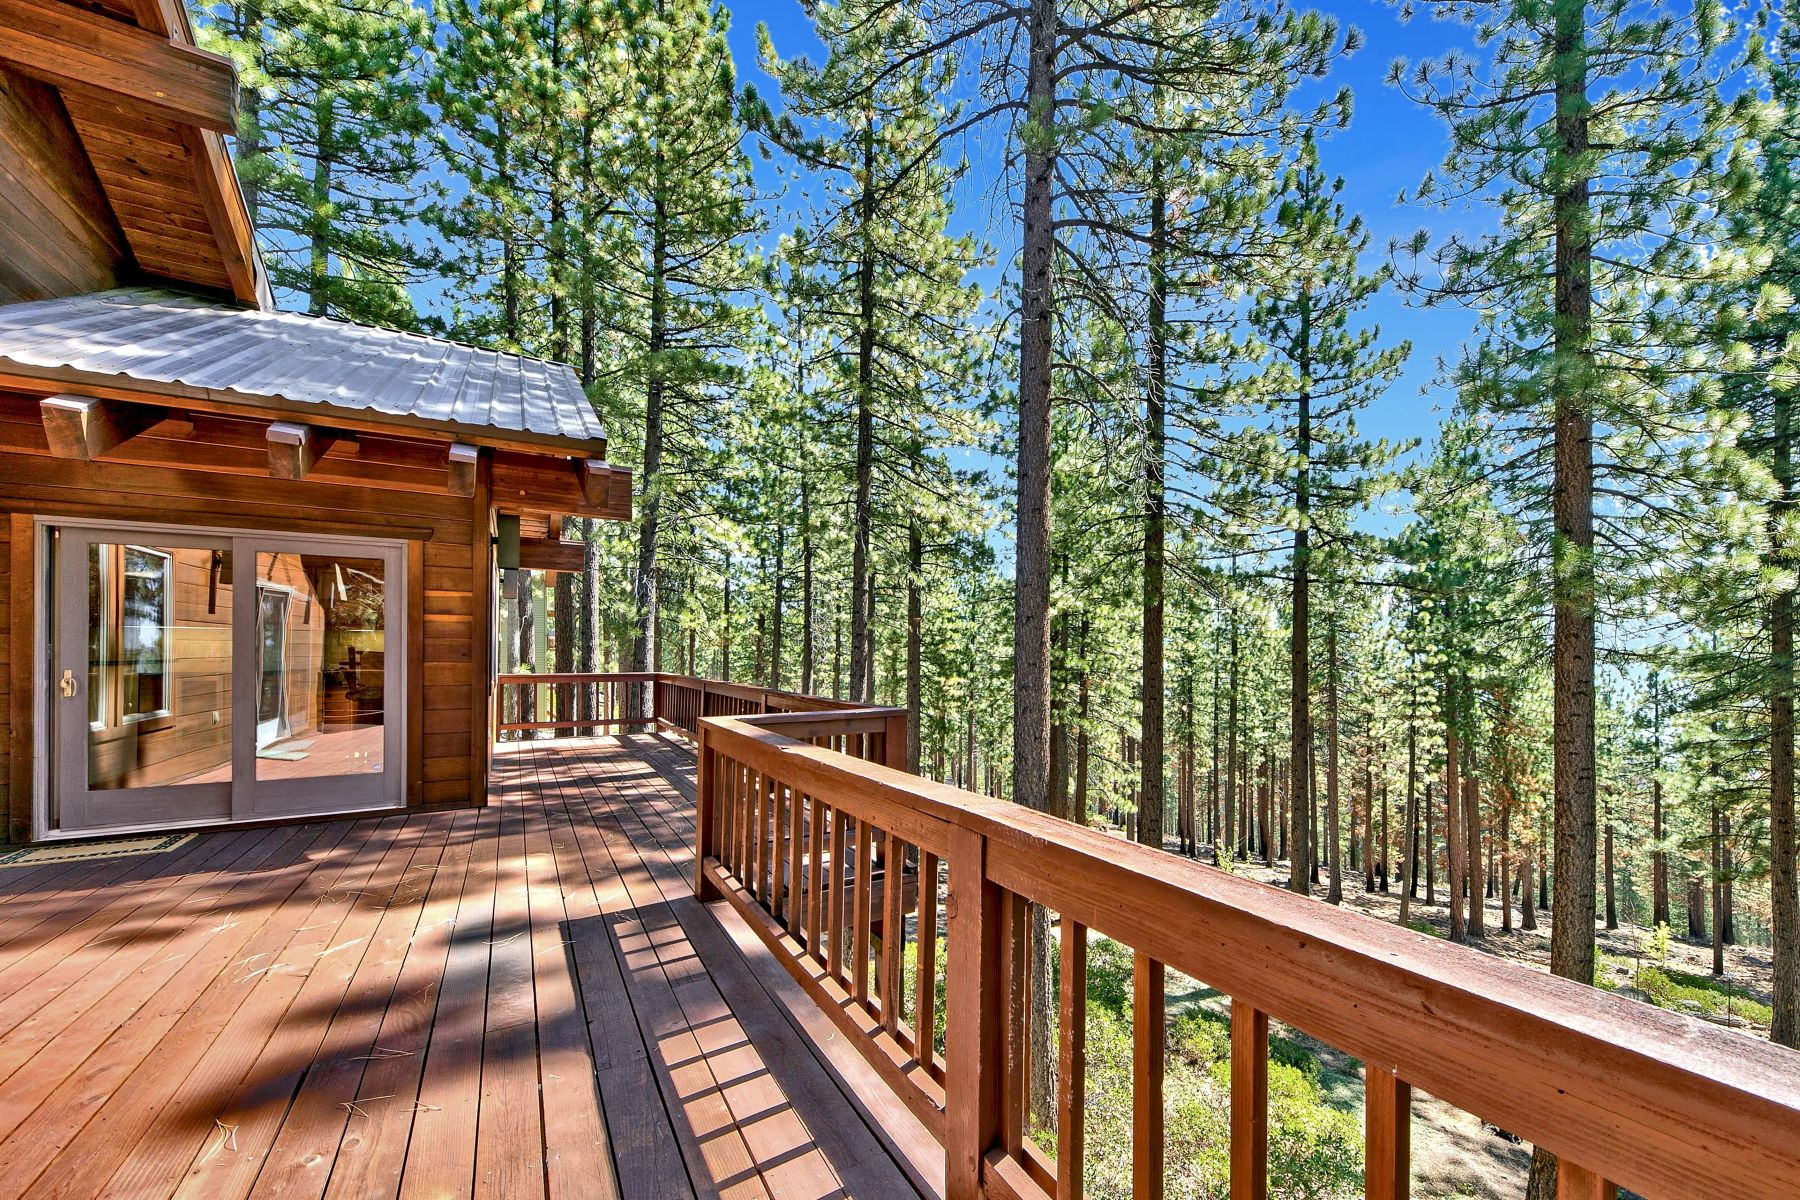 Additional photo for property listing at Tahoe Lifestyle Awaits You 800 Tyner Way Incline Village, Nevada 89451 United States